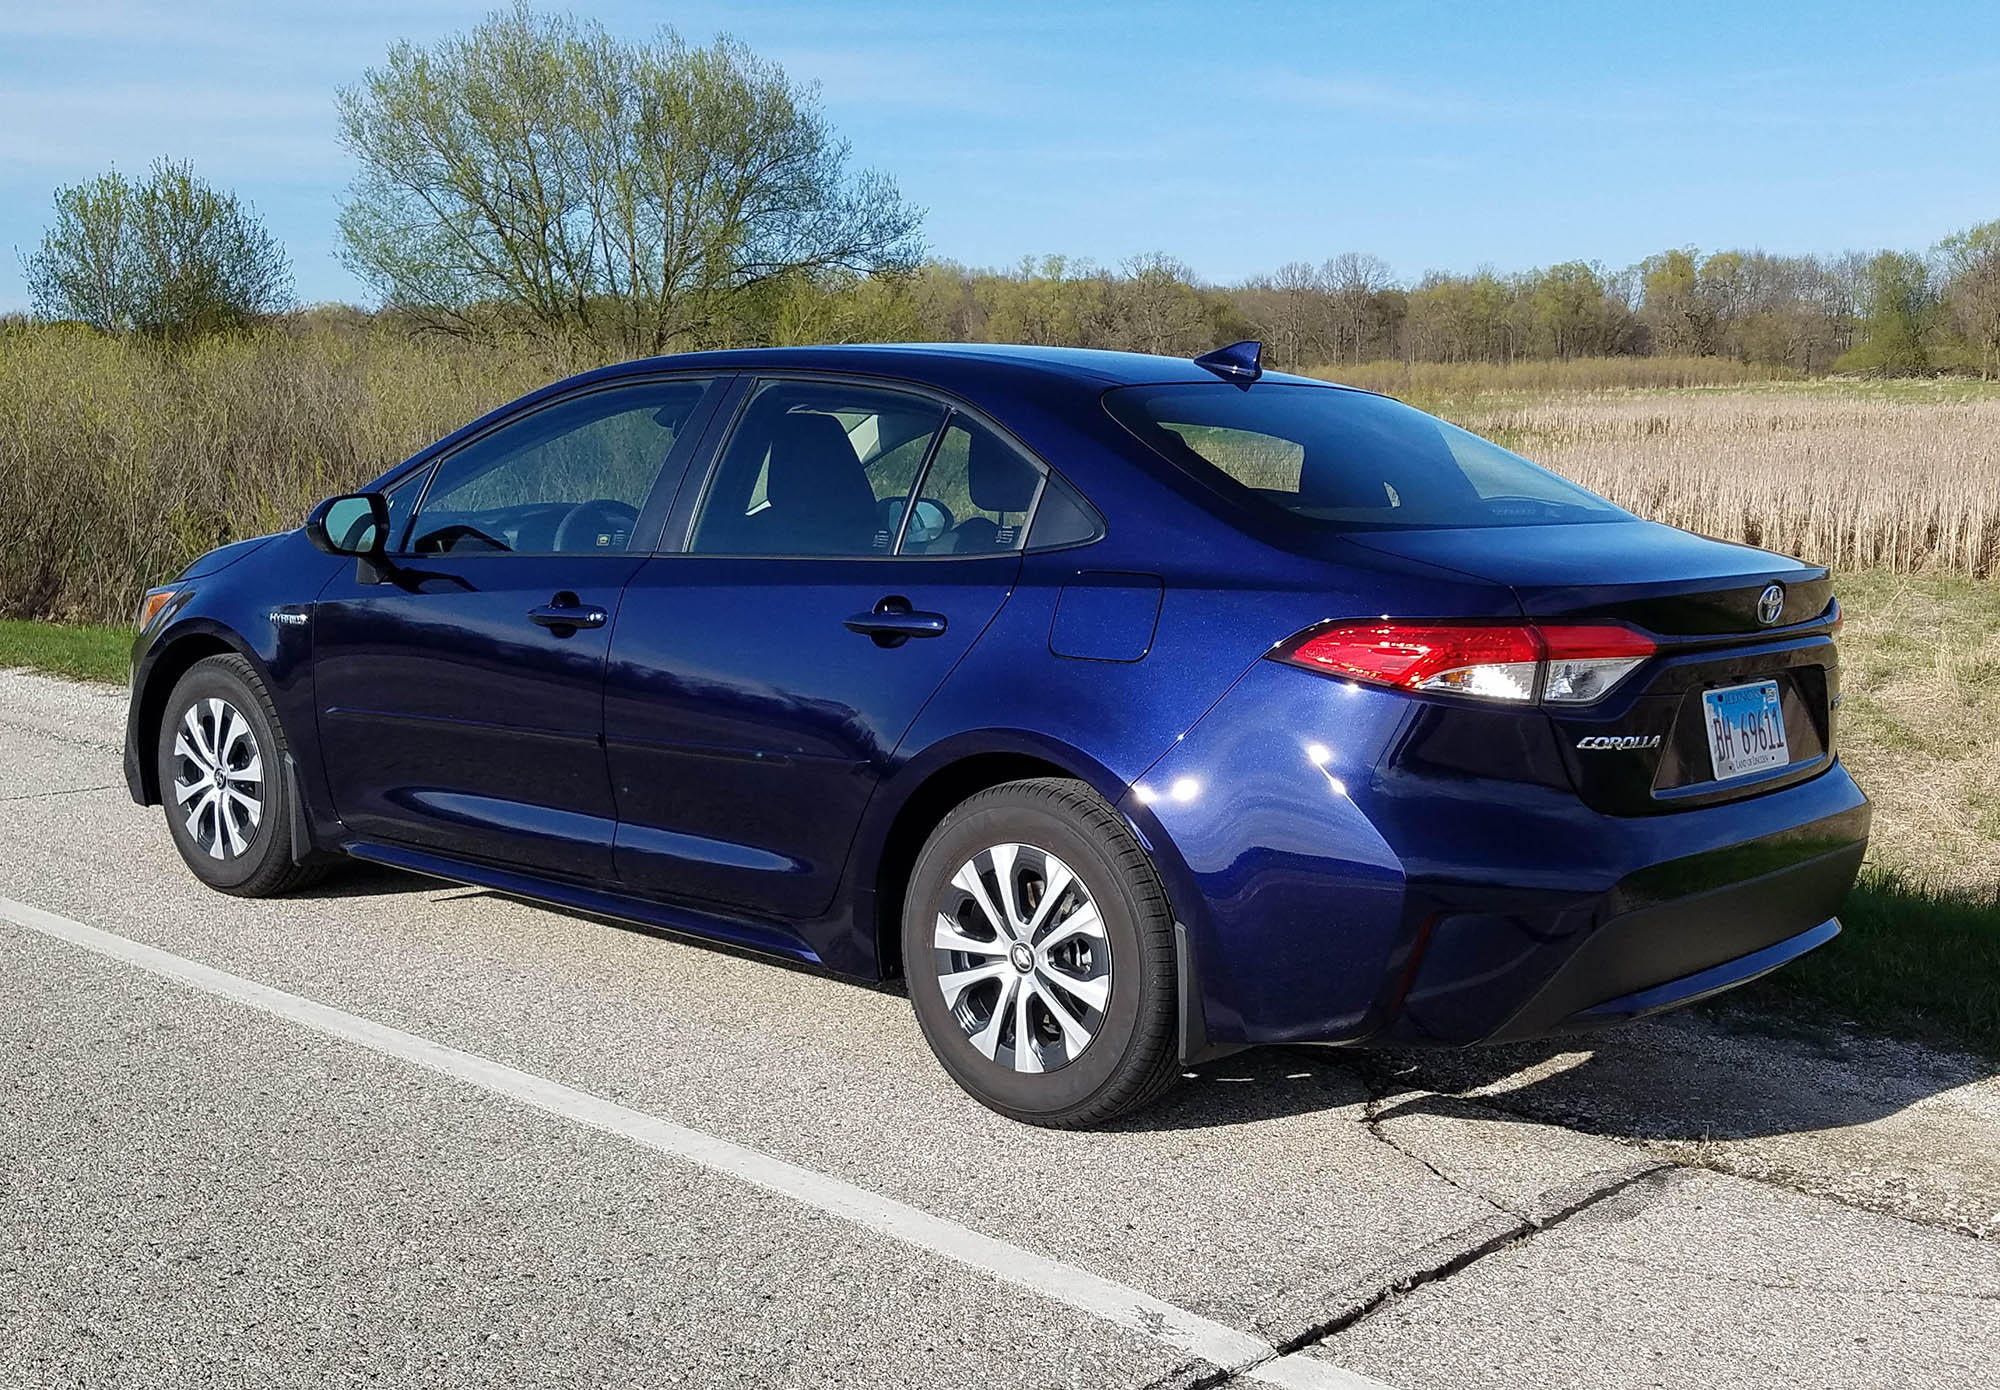 Toyota Corolla Mpg >> 2020 Toyota Corolla Le Hybrid Review High Value High Mpg Low